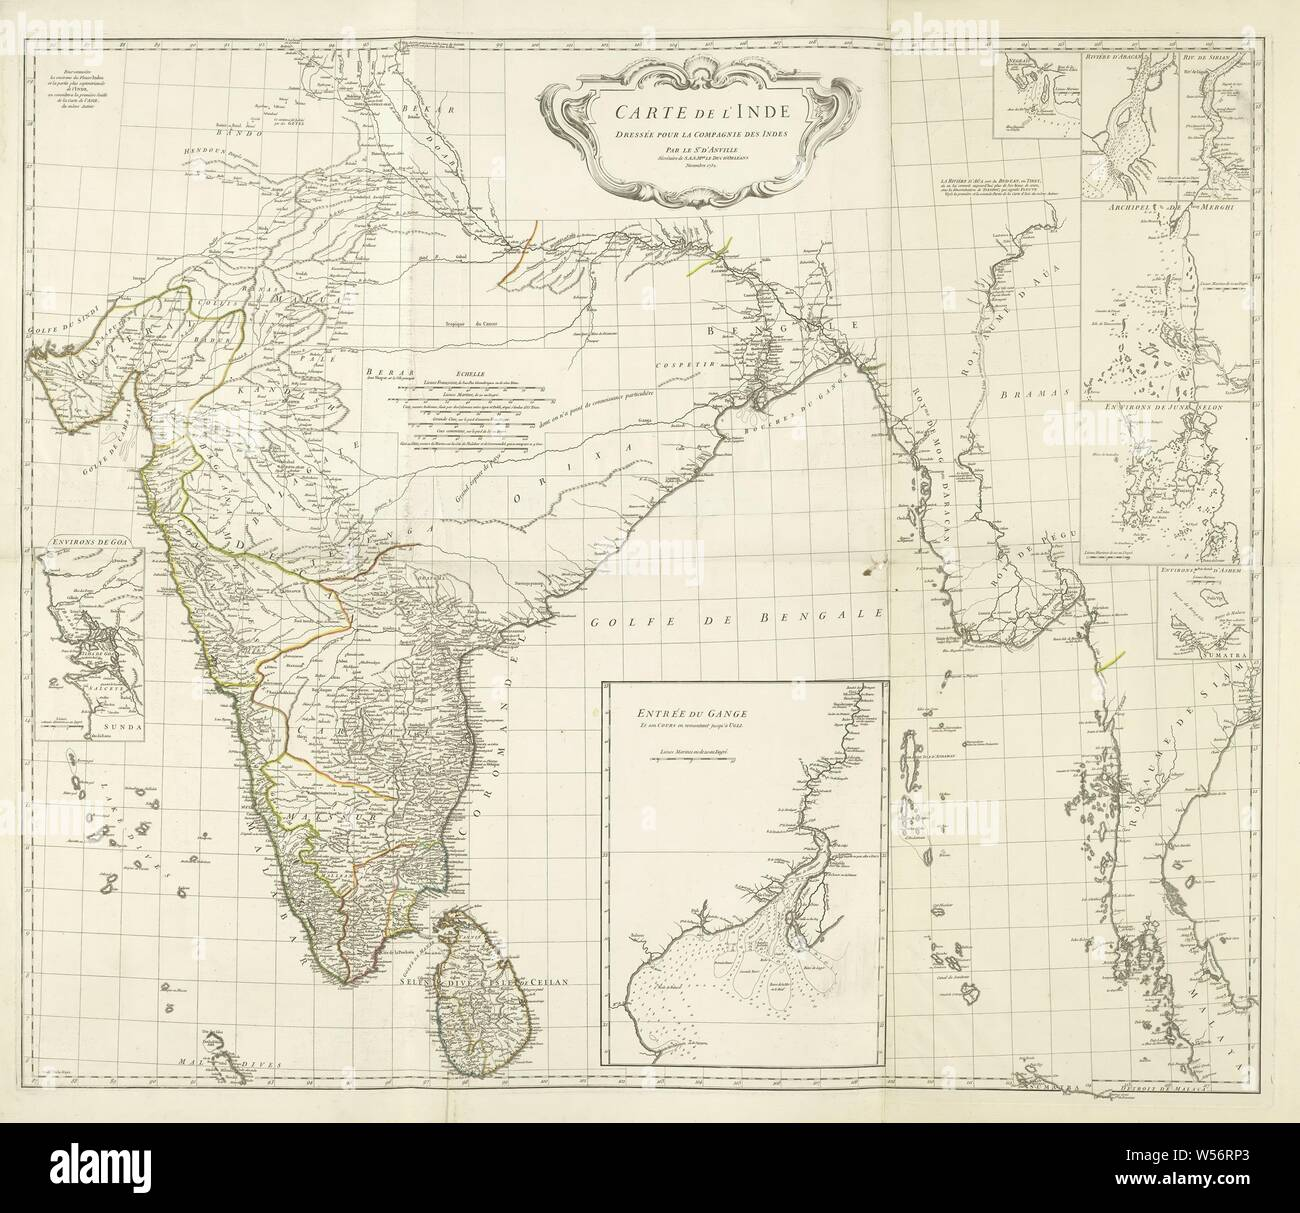 Carte De Linde Regions.Map Of India And The Western Coastal Area Of Burma Siam And